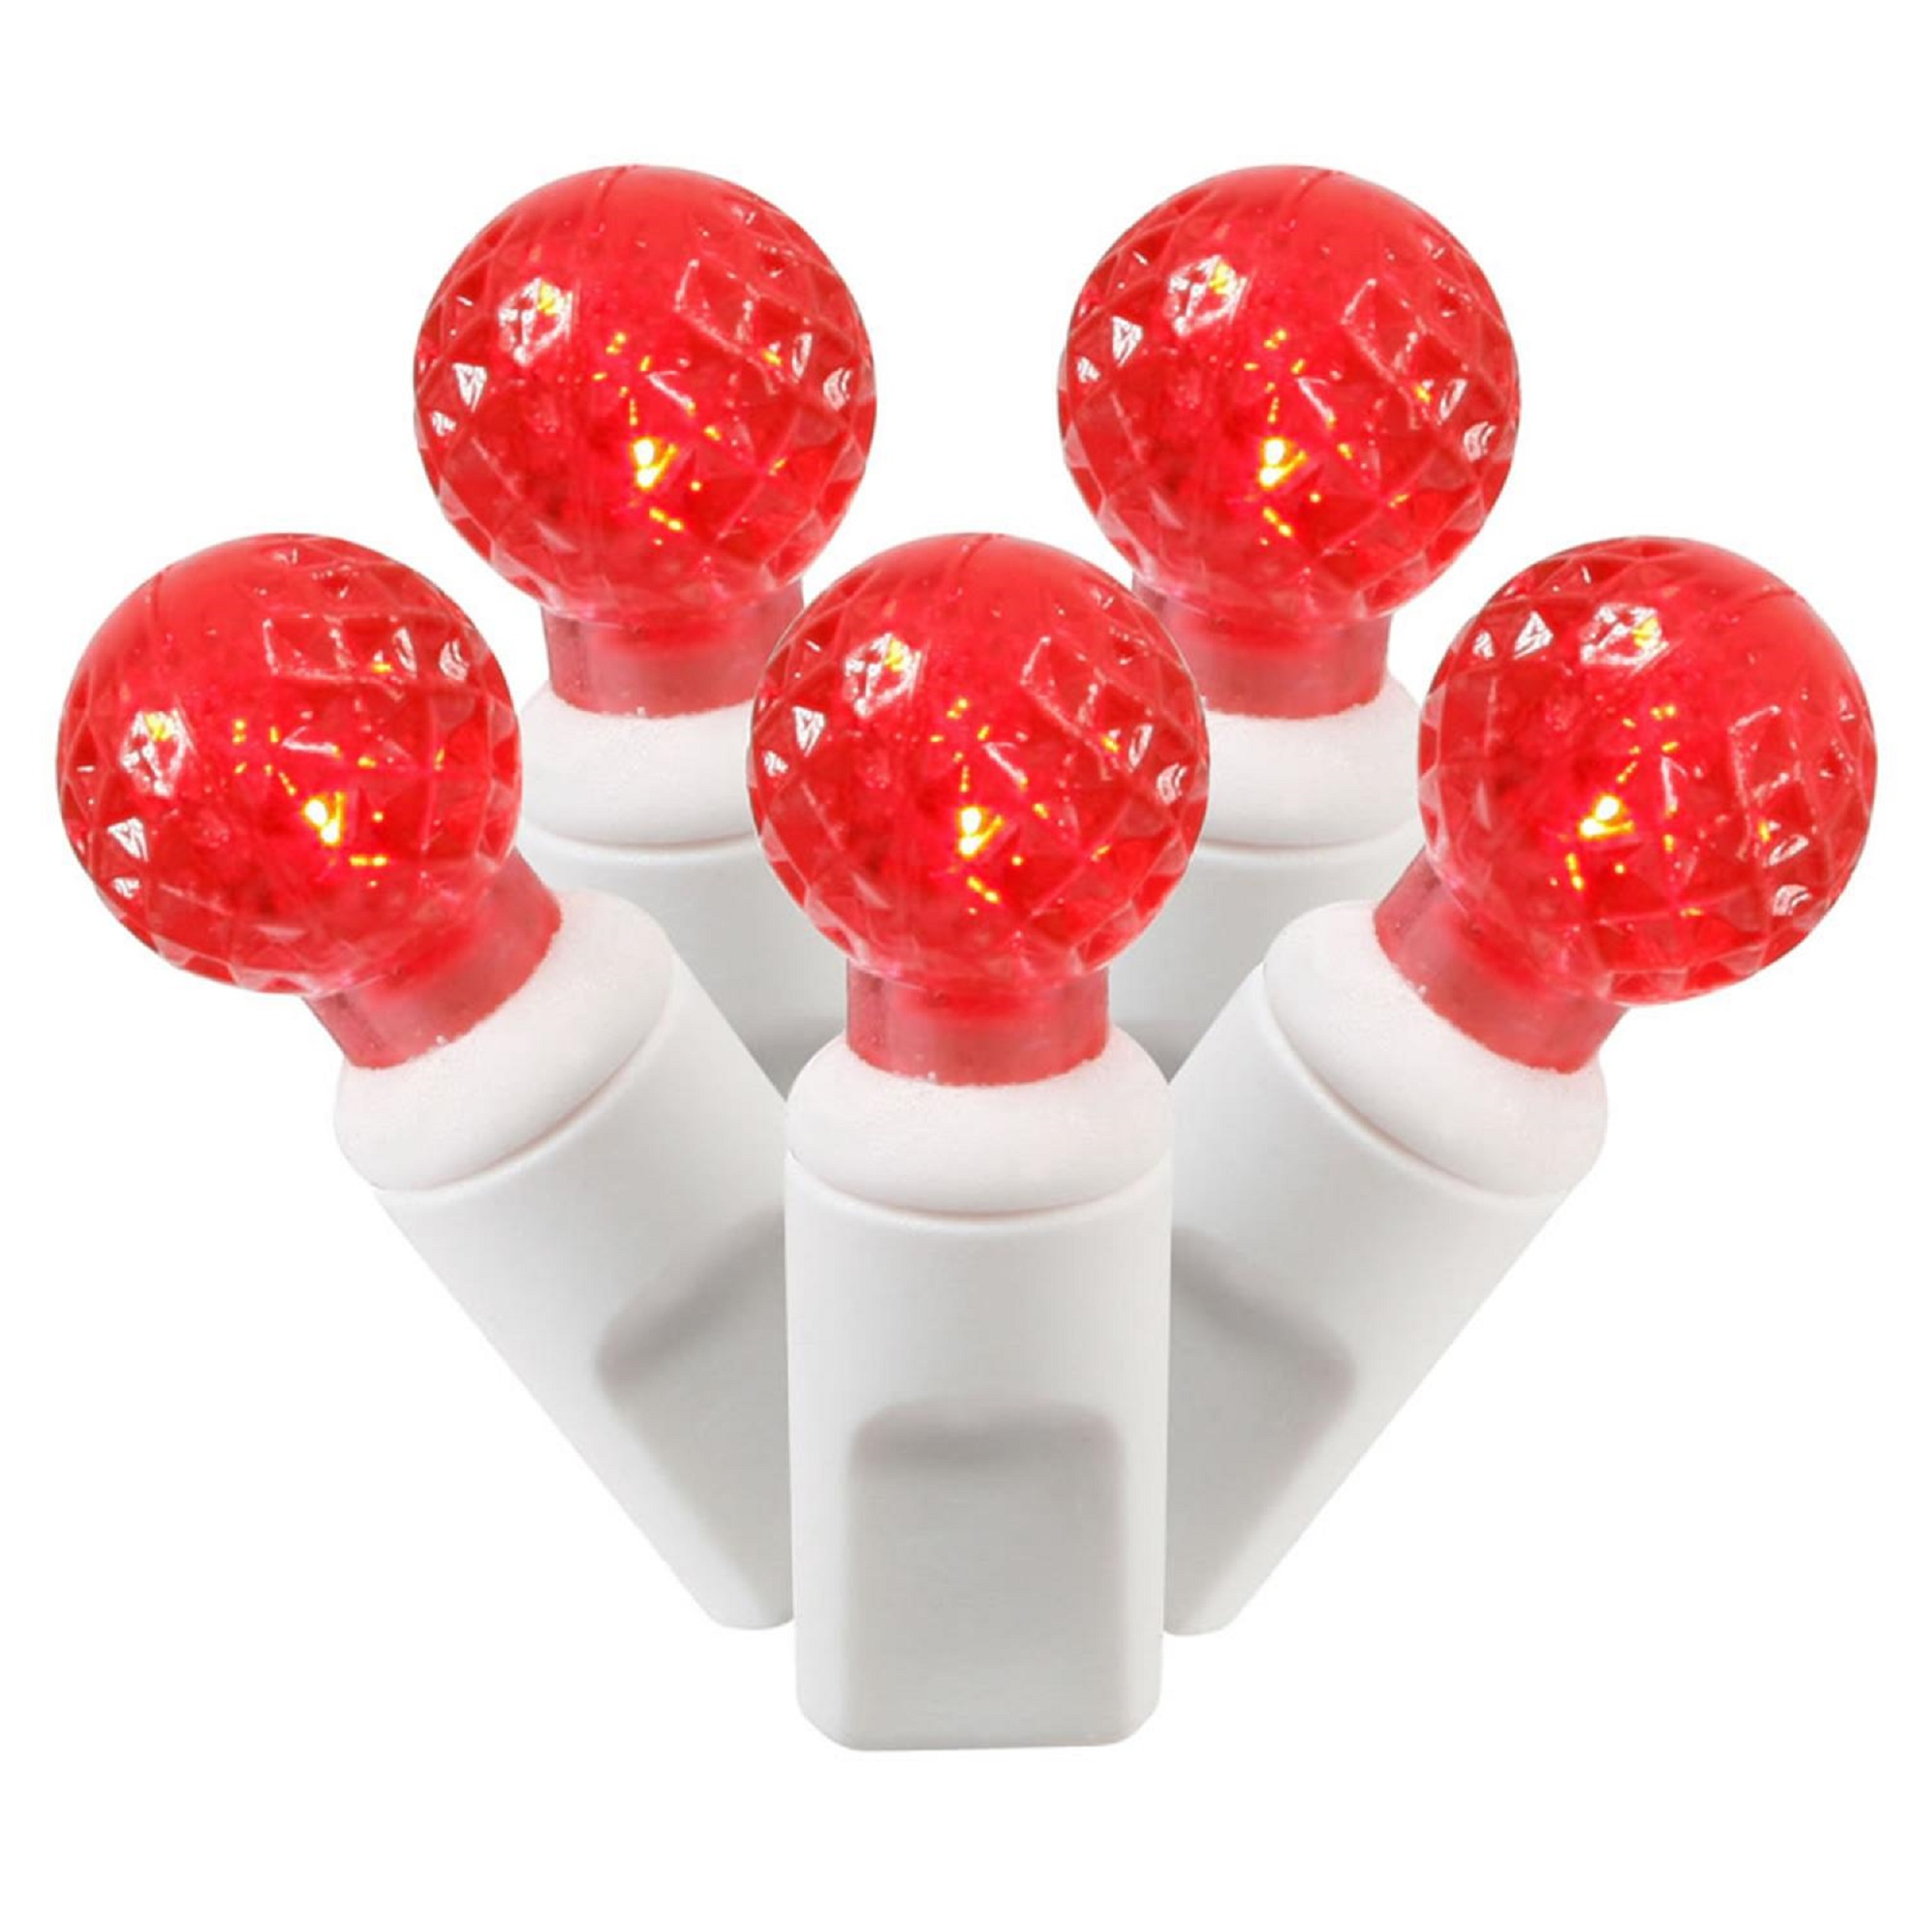 Details About Vickerman 100 G12 Berry Red Led Christmas Lights 4 Spacing White Wire